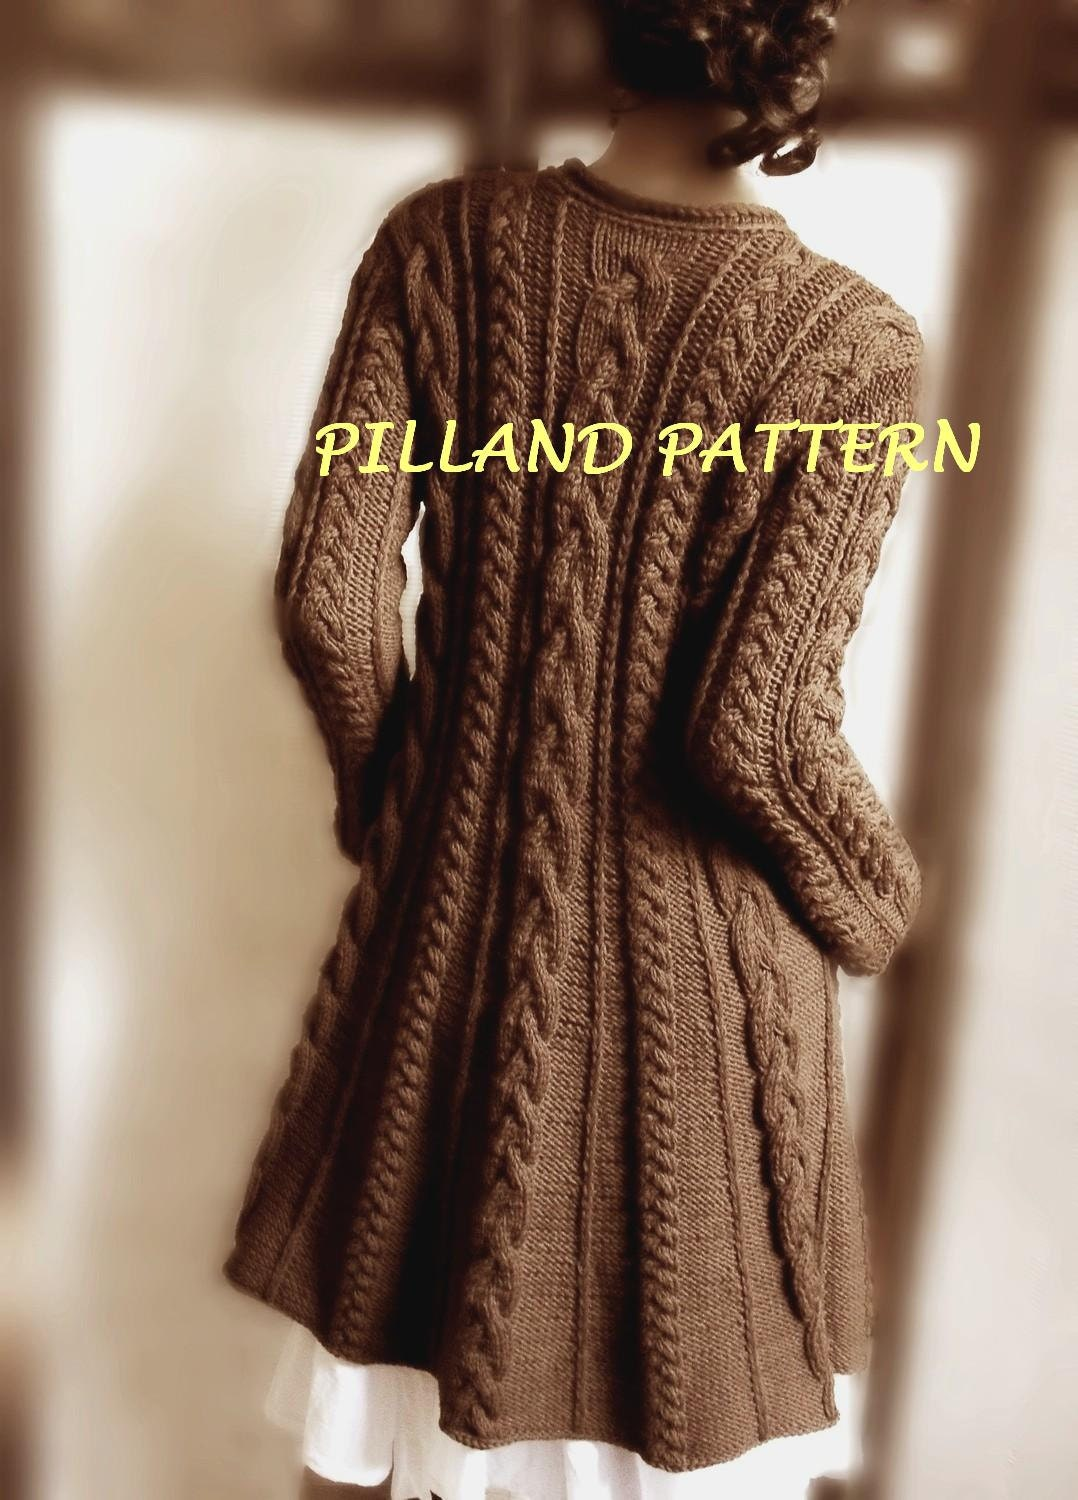 Free, online women's cardigans knitting patterns. Patterns preceded by an plus sign (+) require free registration (to that particular pattern site, not to Knitting Pattern Central) before viewing.